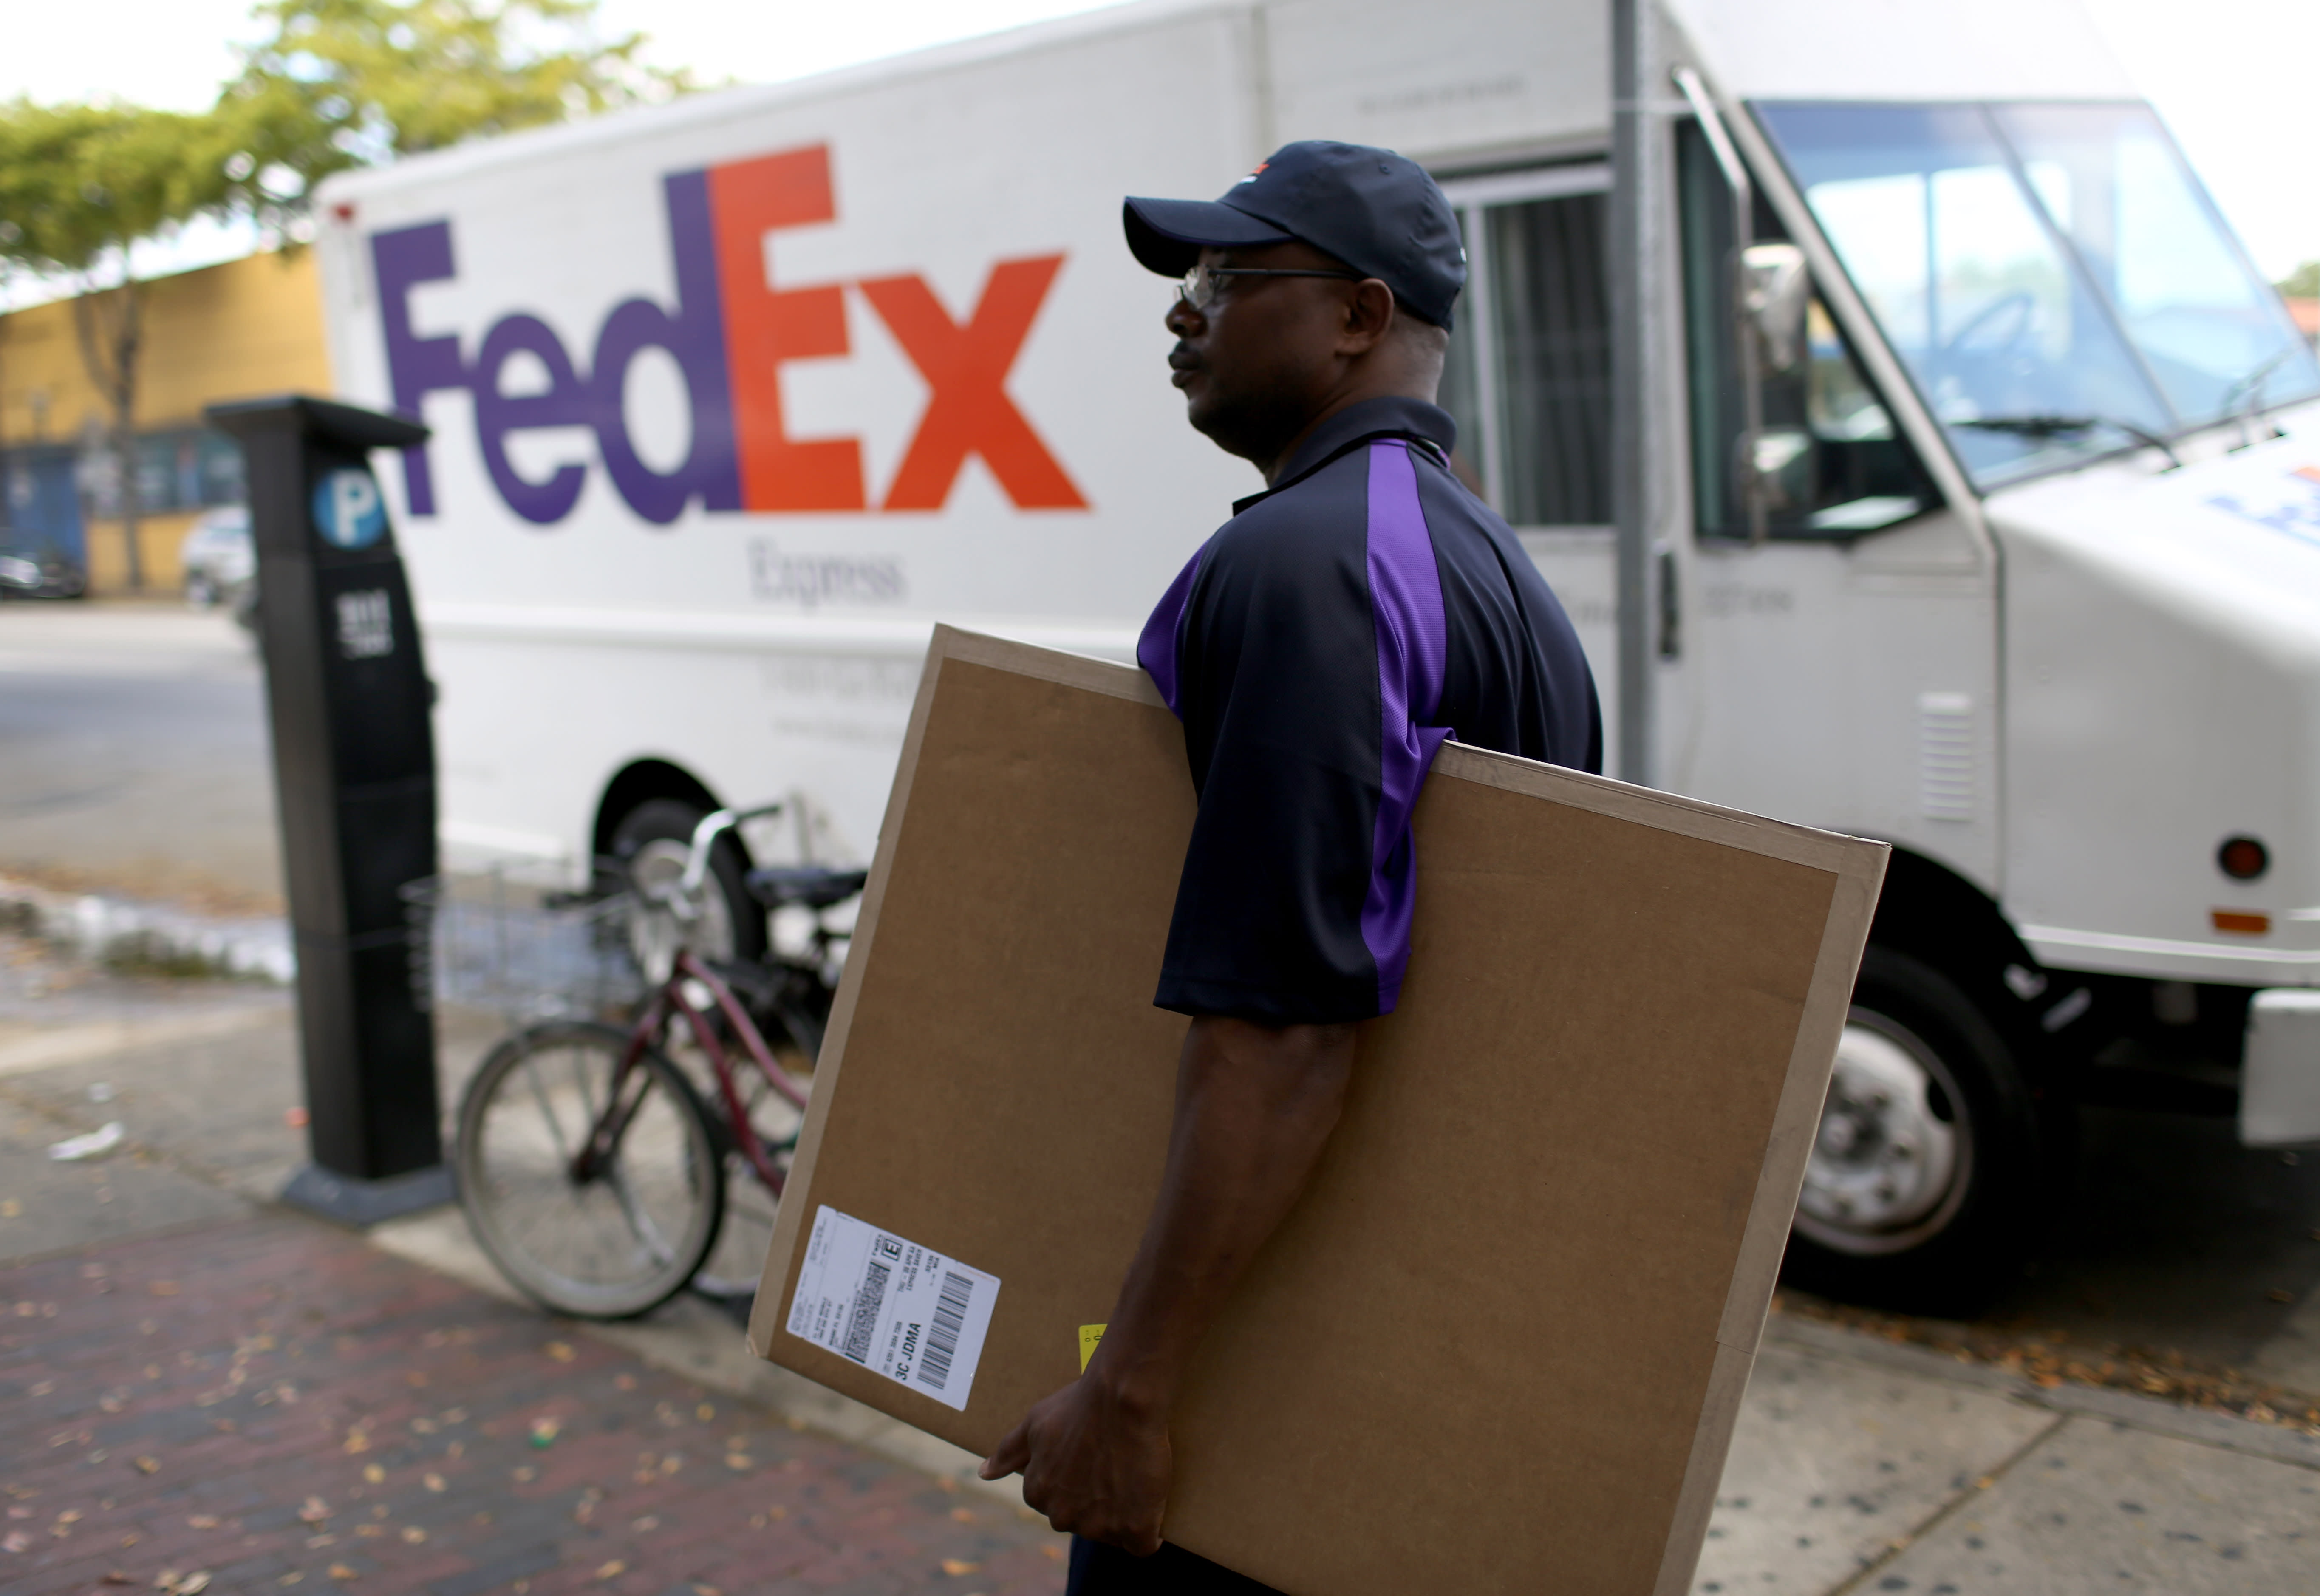 Here are Wednesday's biggest analyst calls: FedEx, Eli Lilly, AMC & more